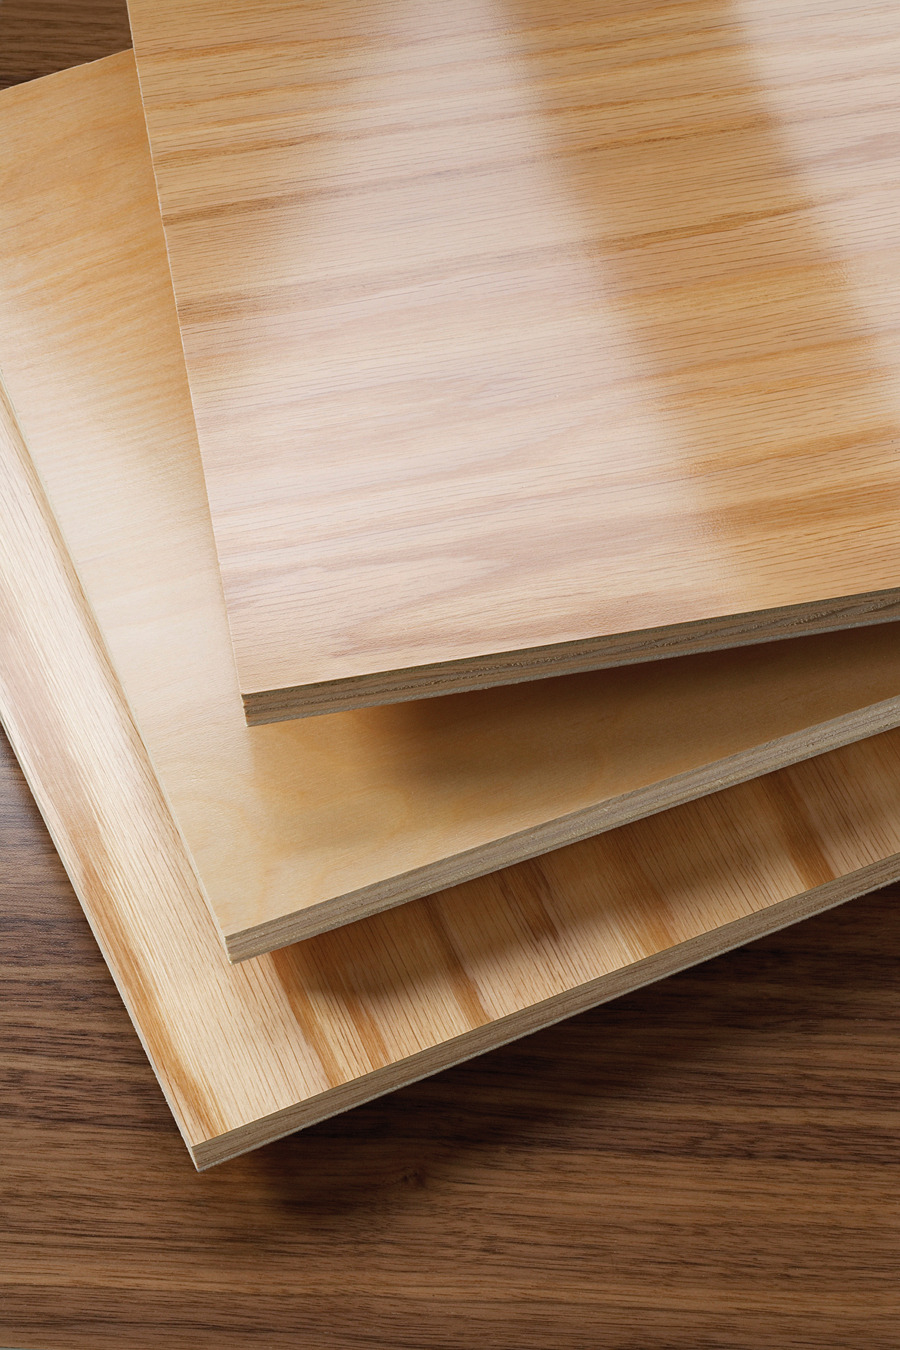 Europly Plus And Mpx 174 Hardwood Plywood Panels From